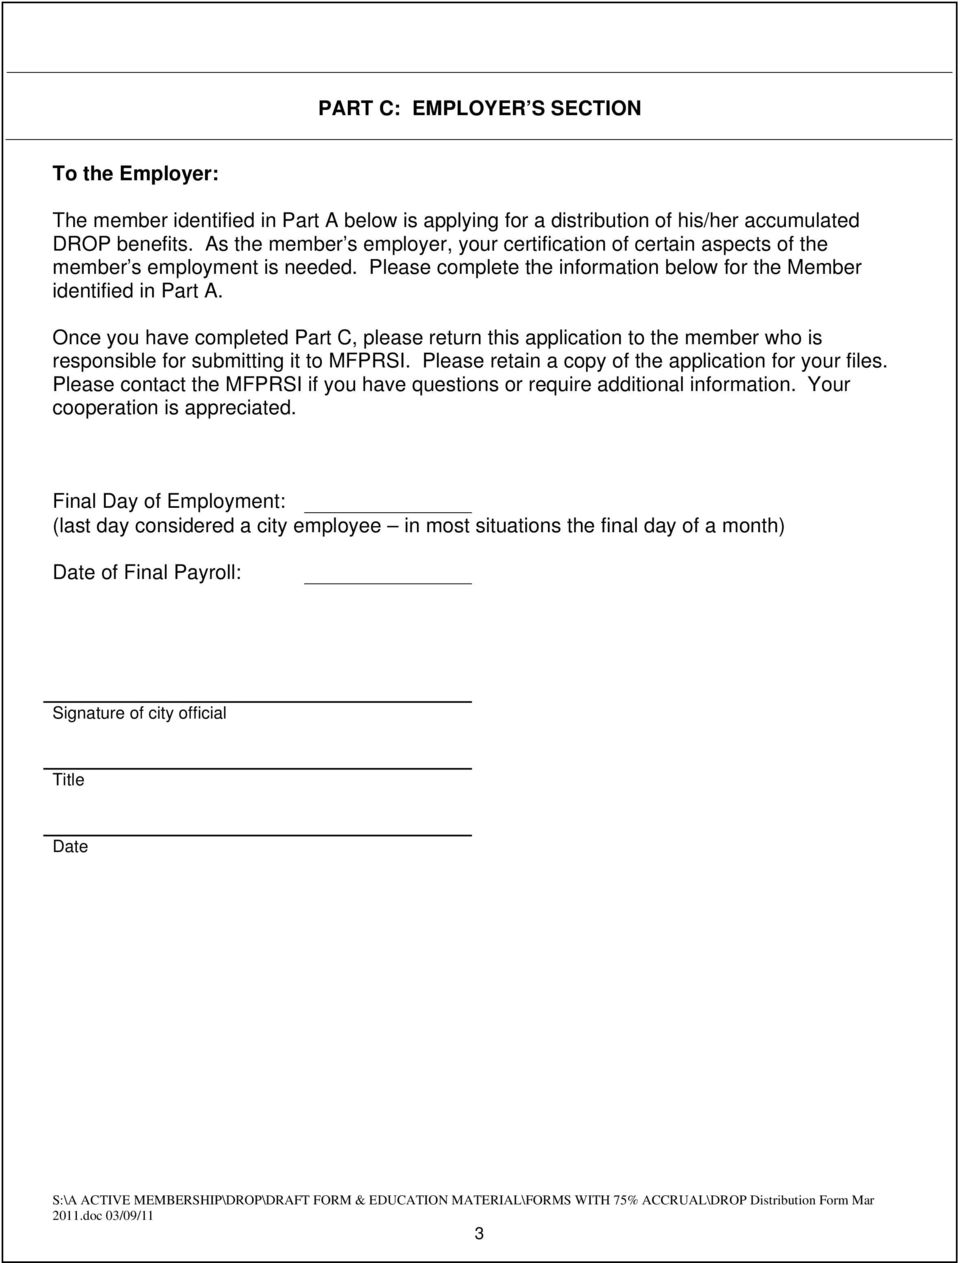 Once you have completed Part C, please return this application to the member who is responsible for submitting it to MFPRSI. Please retain a copy of the application for your files.